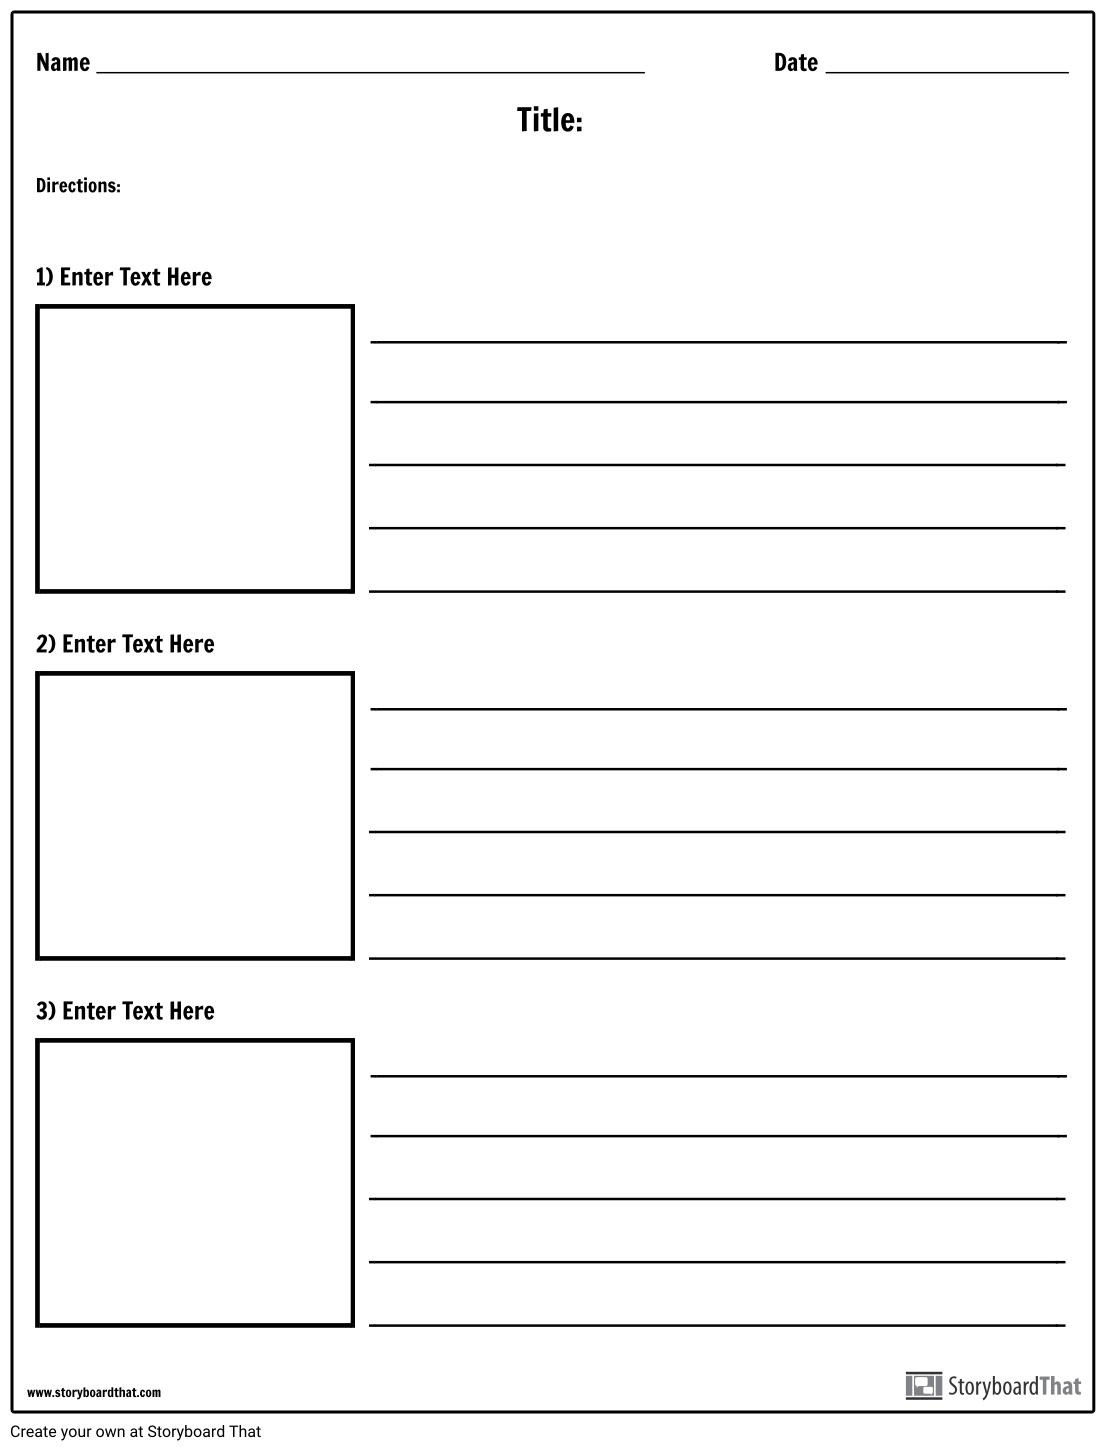 Images And Text Worksheet Templates Worksheet Maker